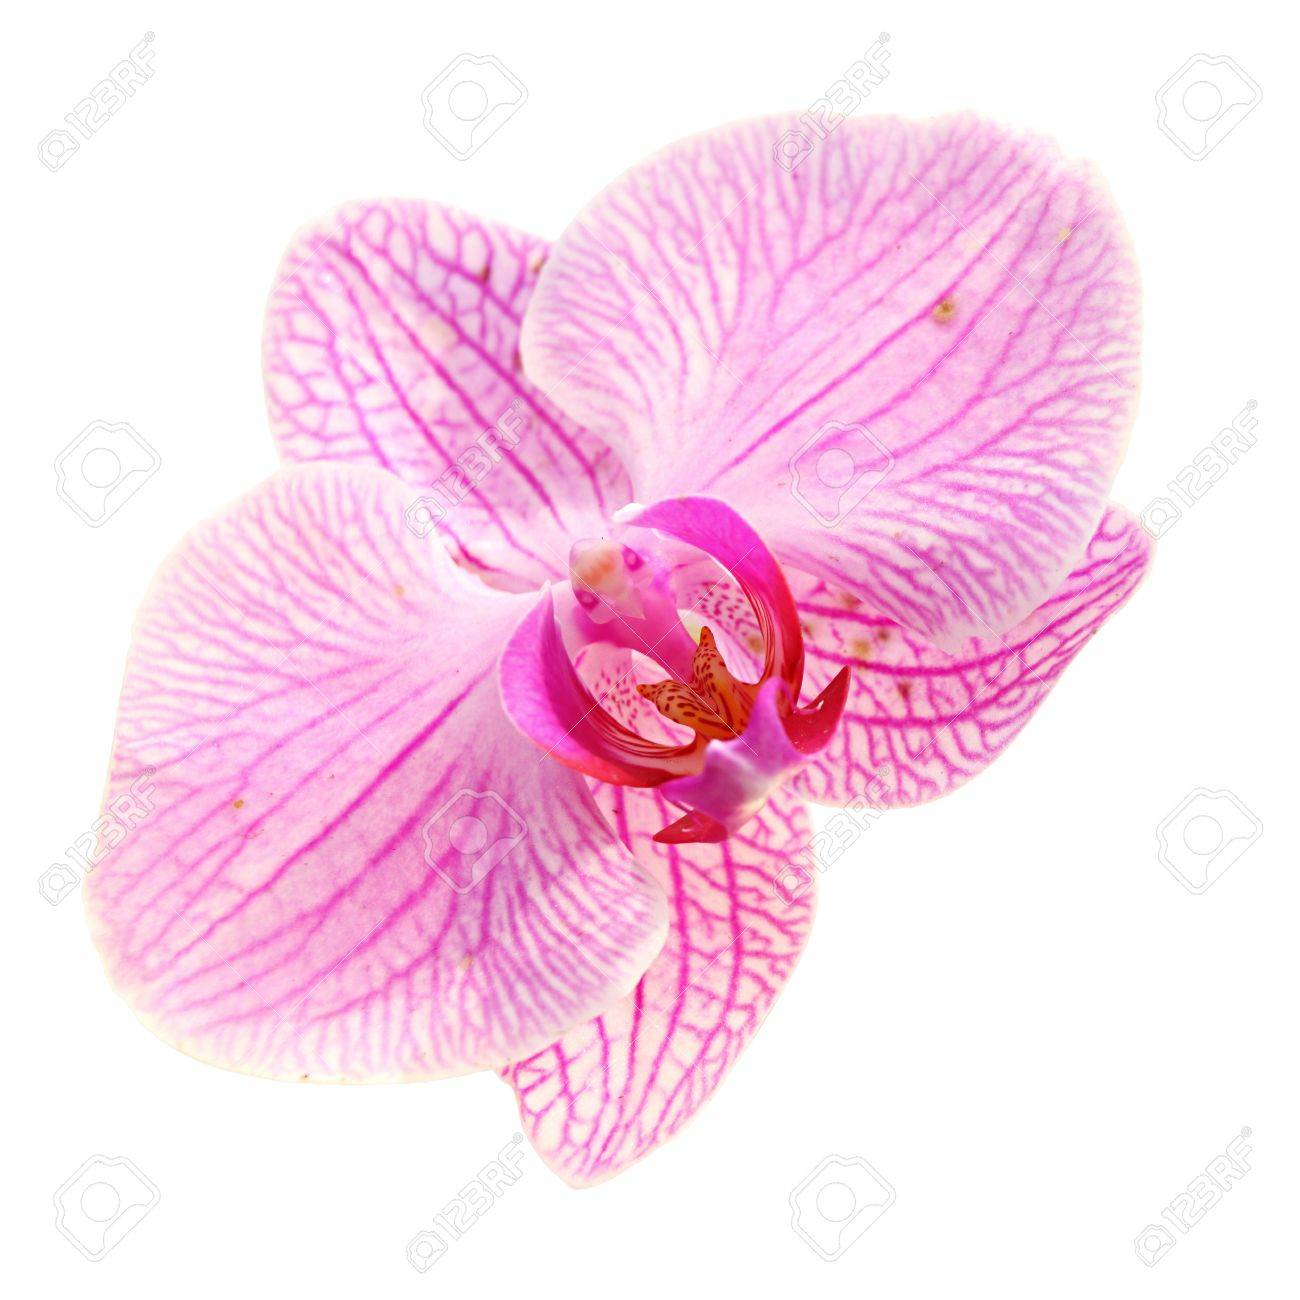 Sweet Color Pink Orchid Isolate - 8499341